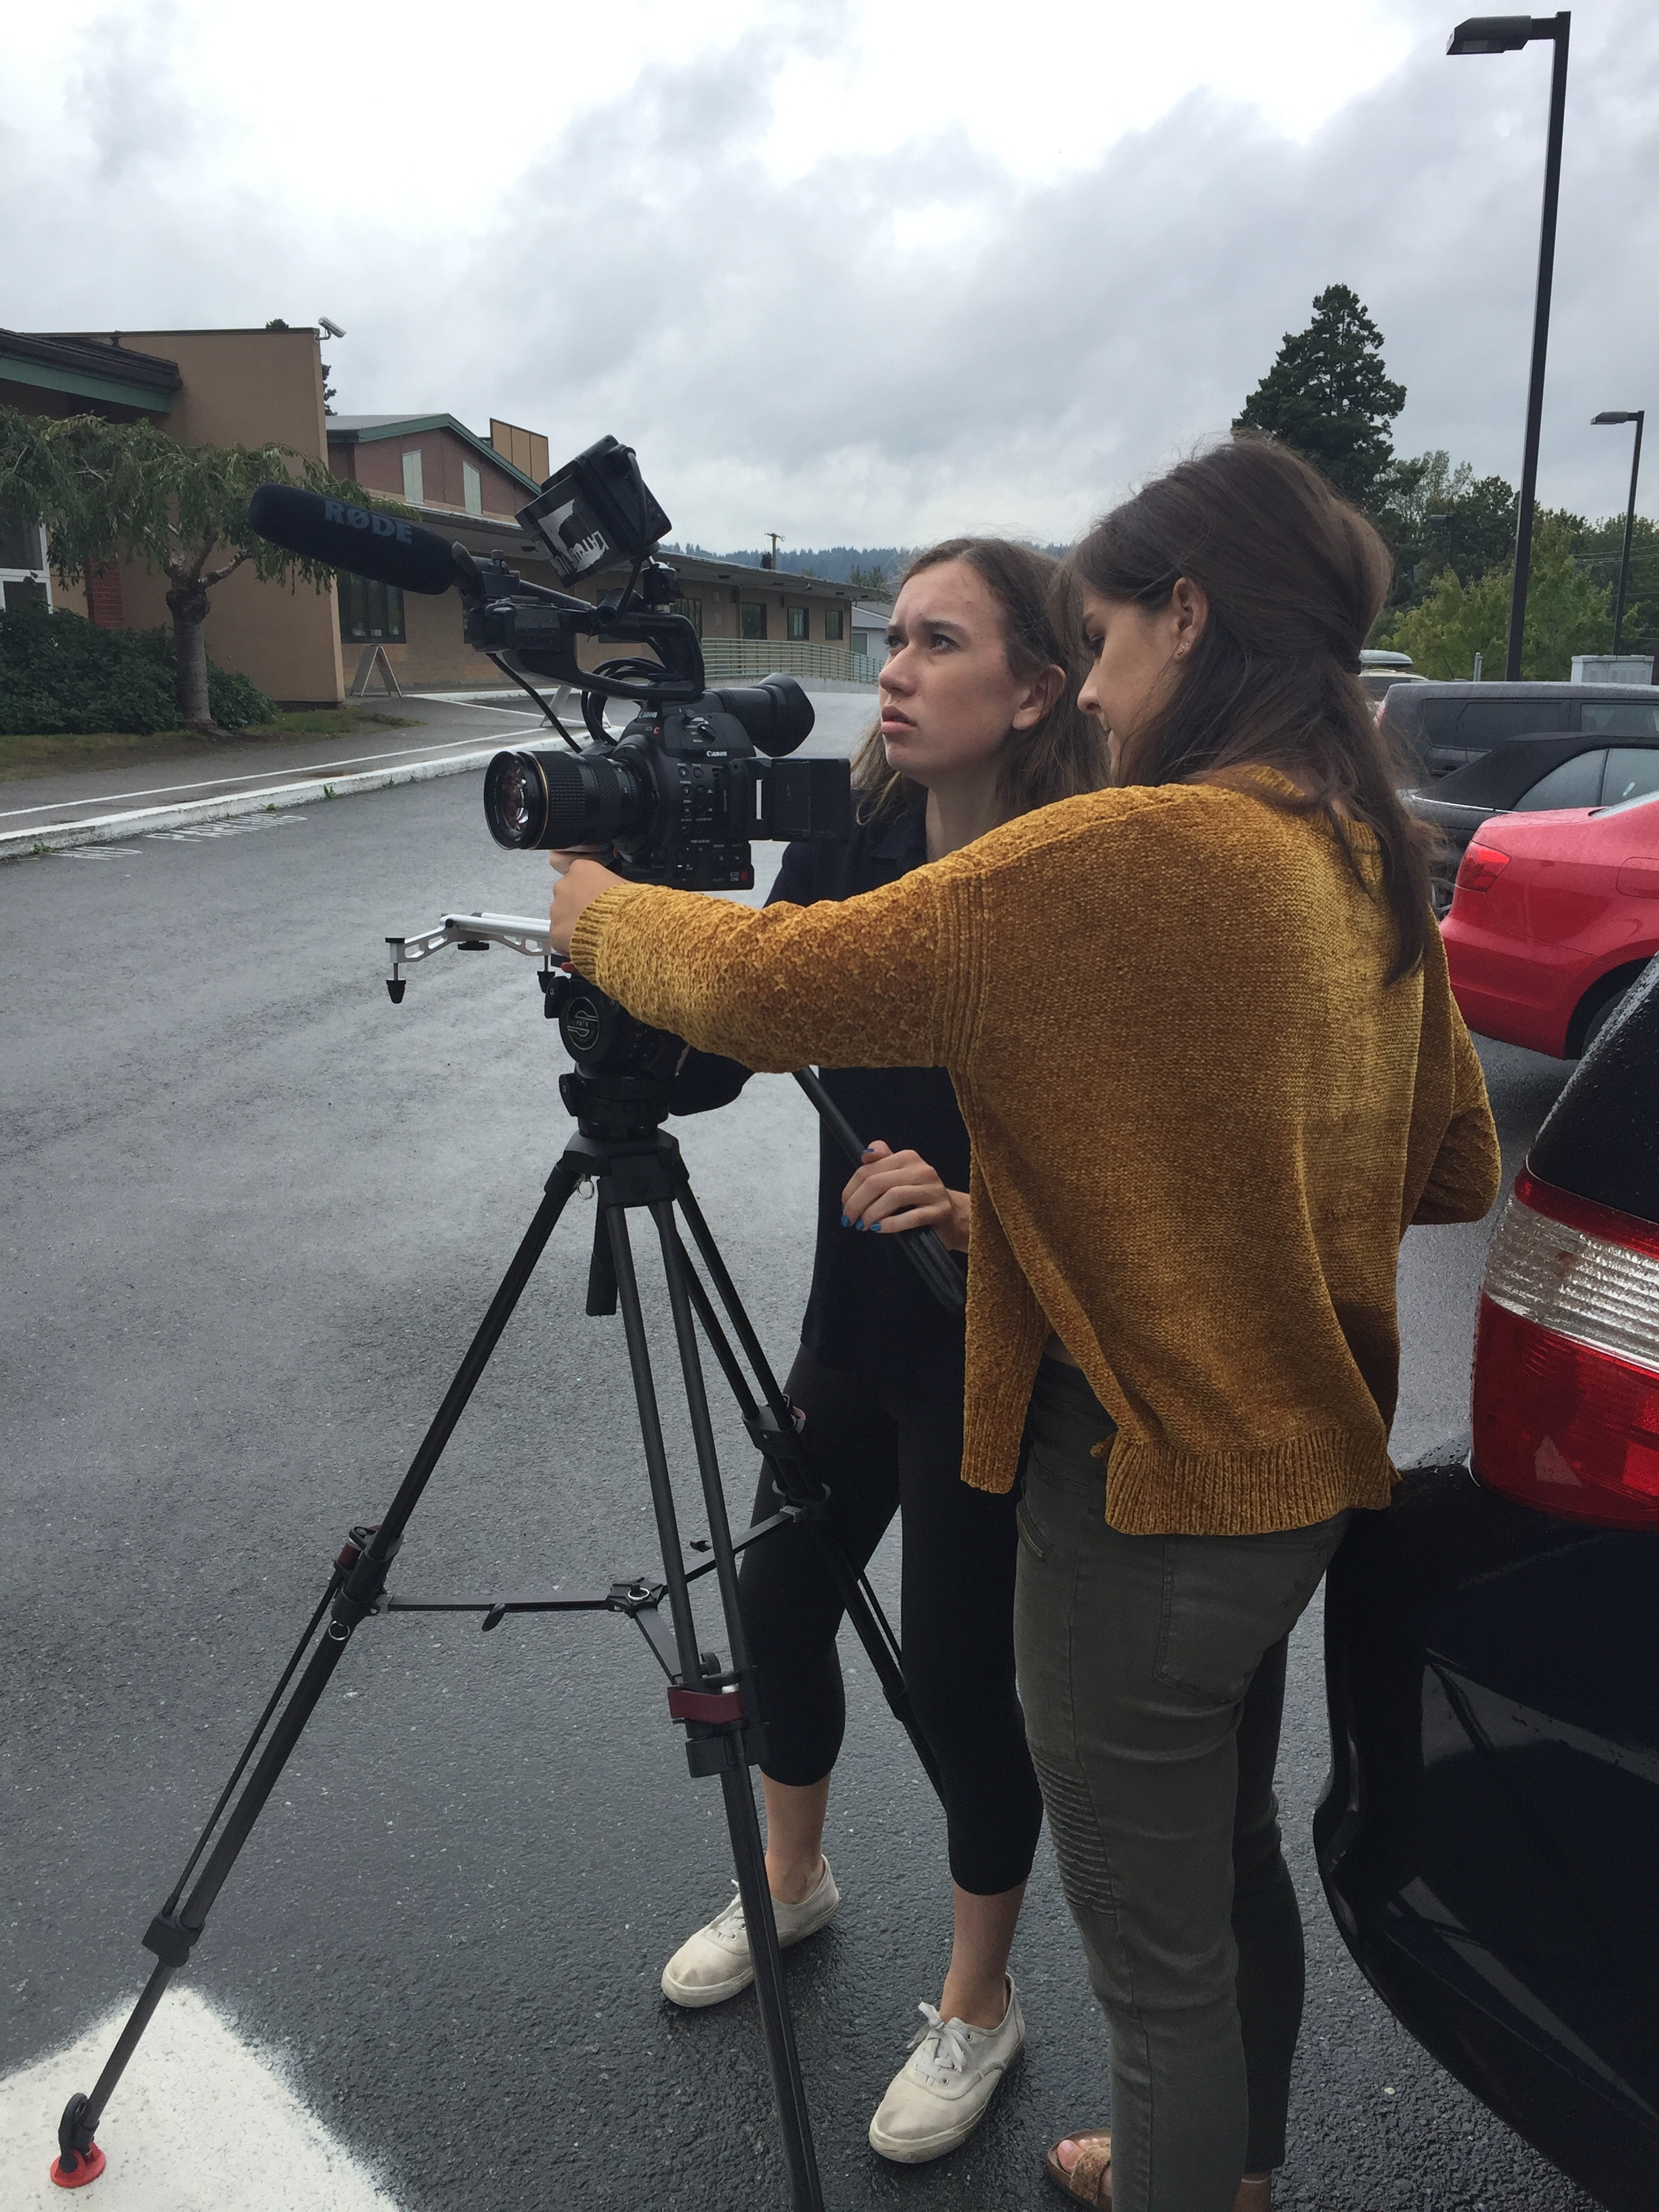 Taylor (left) Andie (right) prepping the camera for a shot of a school logo at the end of the first day.